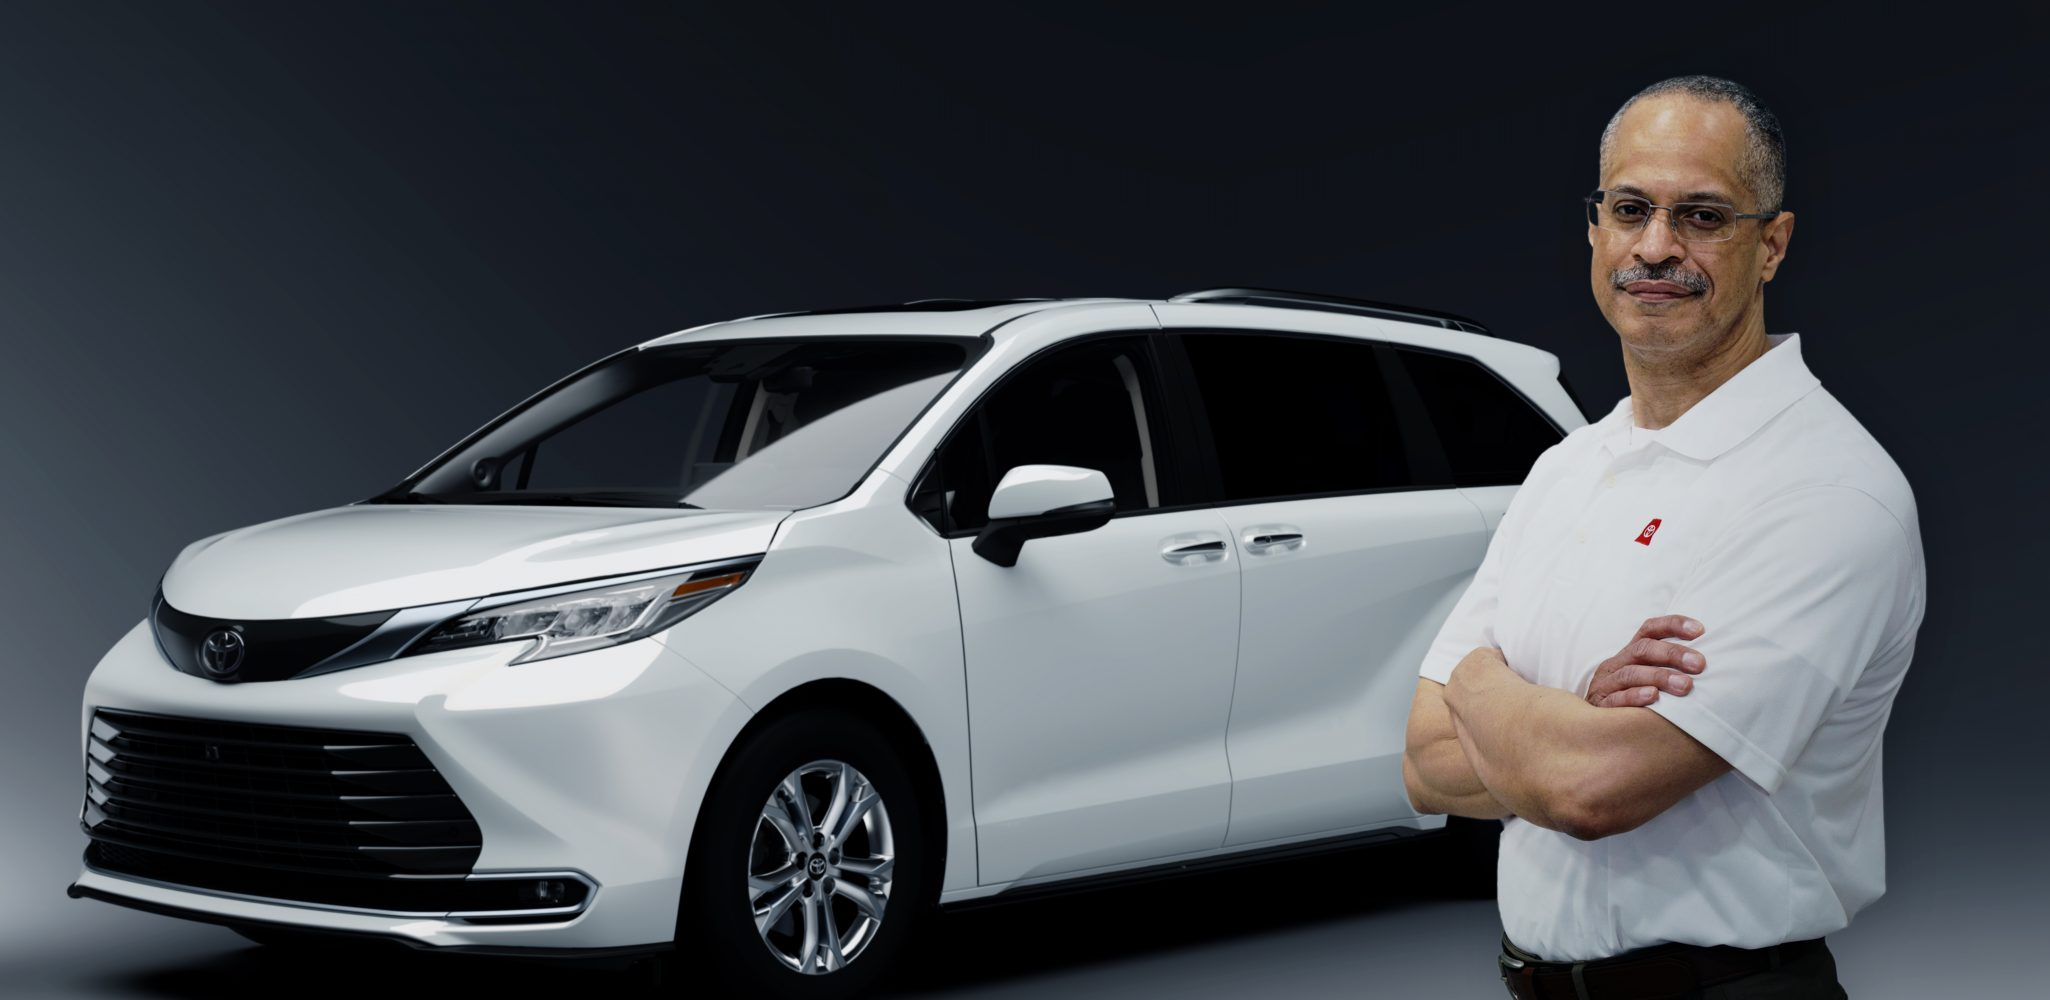 Craig Payne on How the Sienna Provides Mobility for All